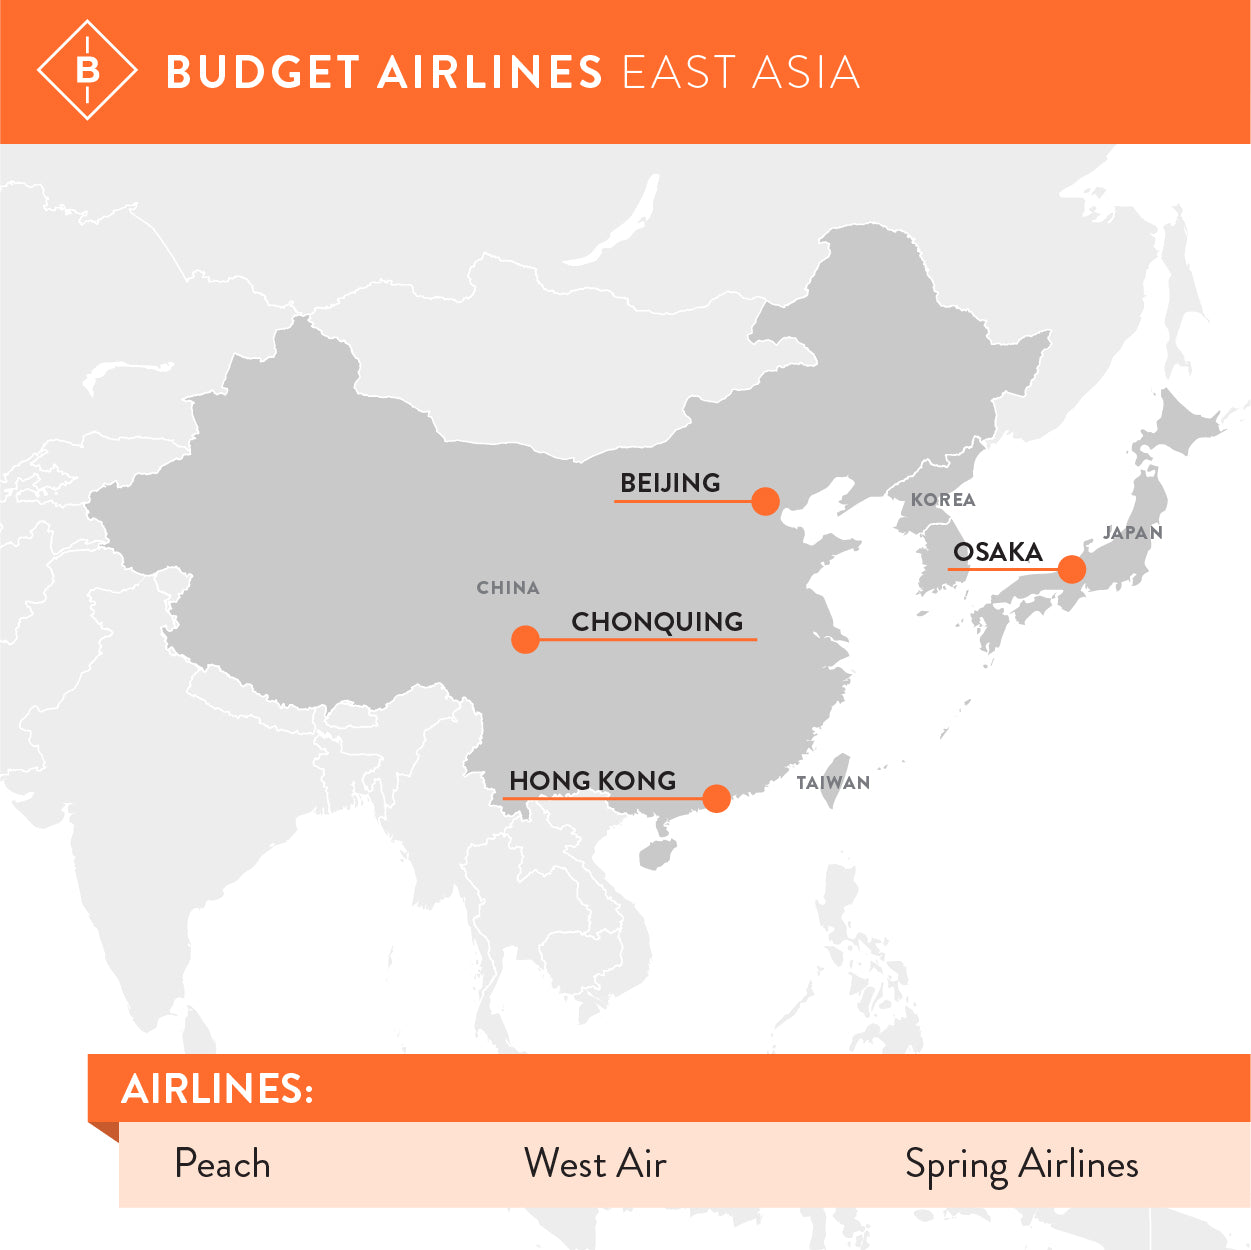 Options for low cost carriers in East Asia.